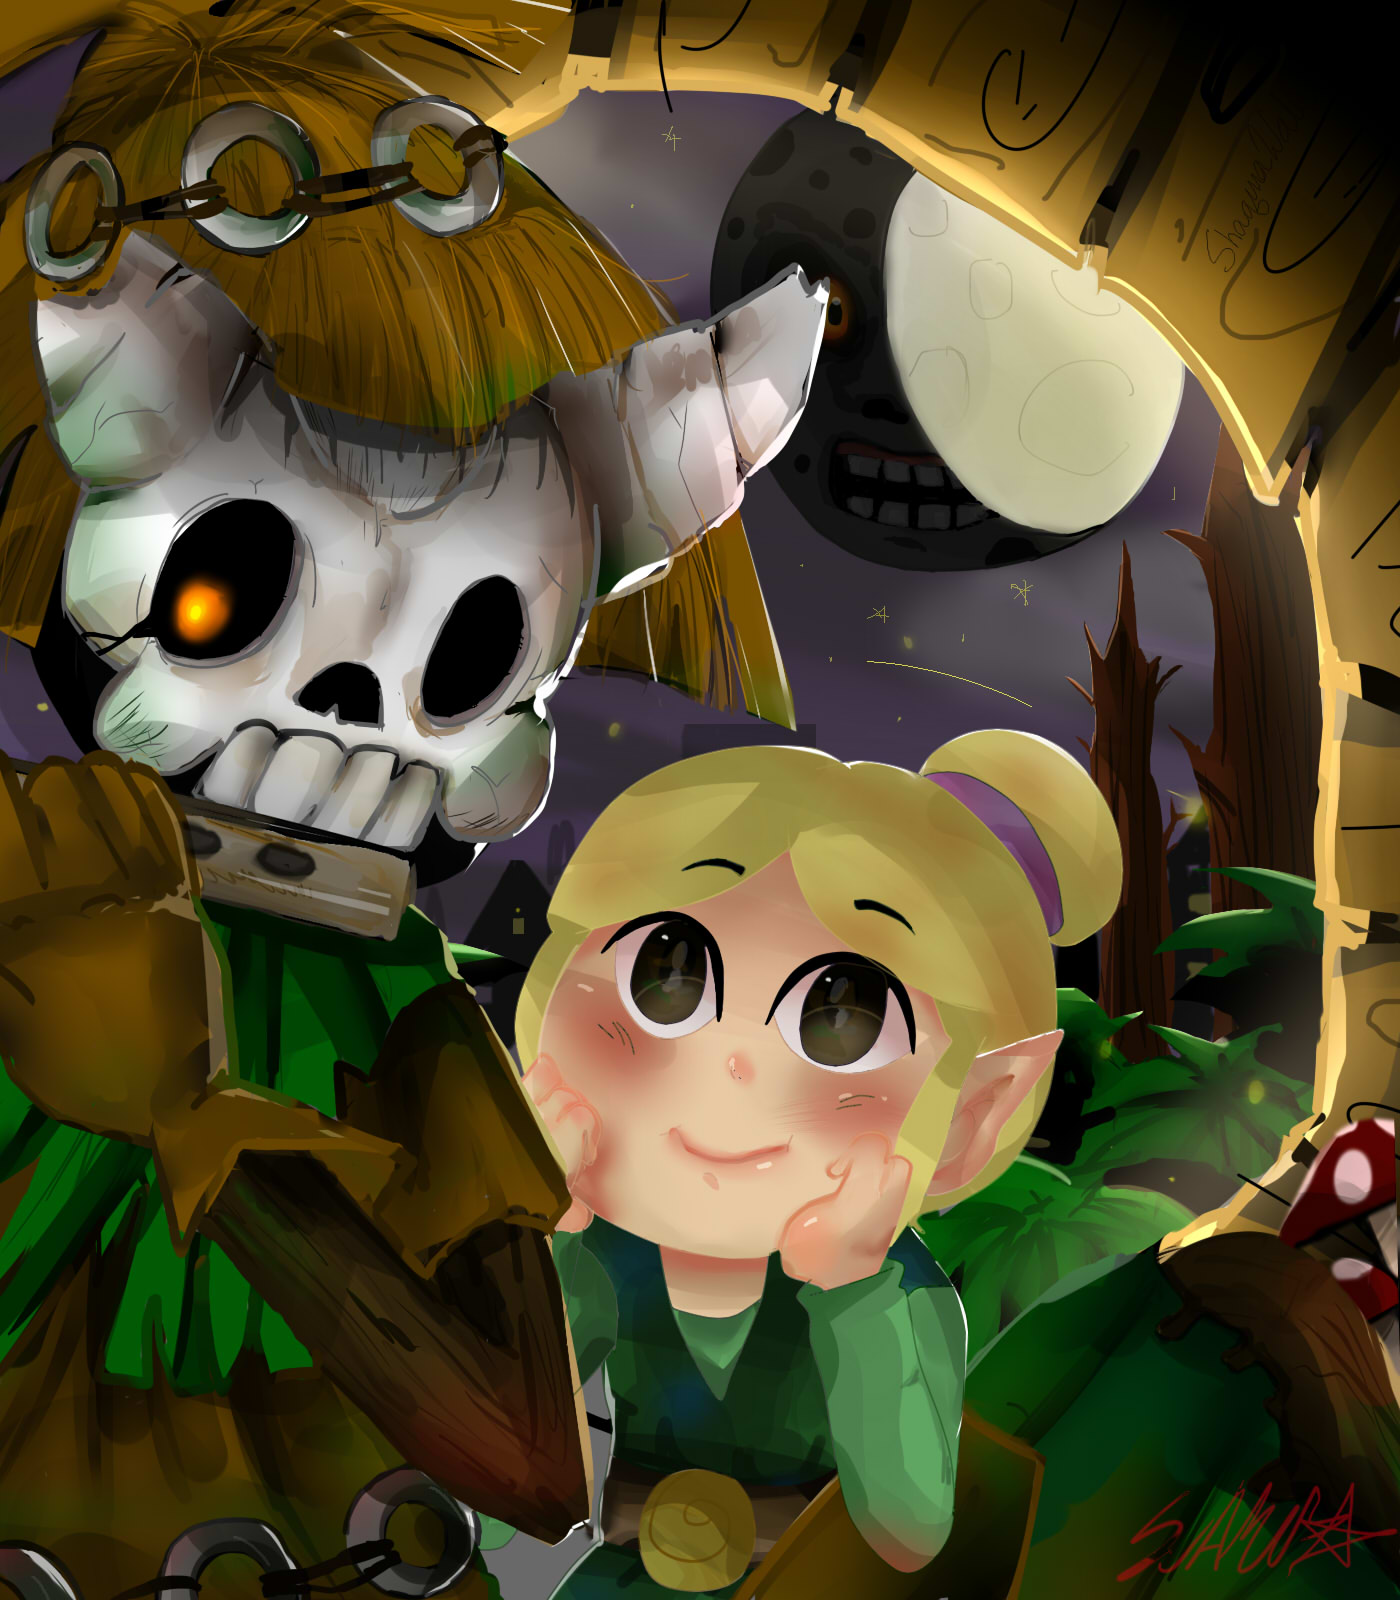 SkullKid and Link's Grandmother